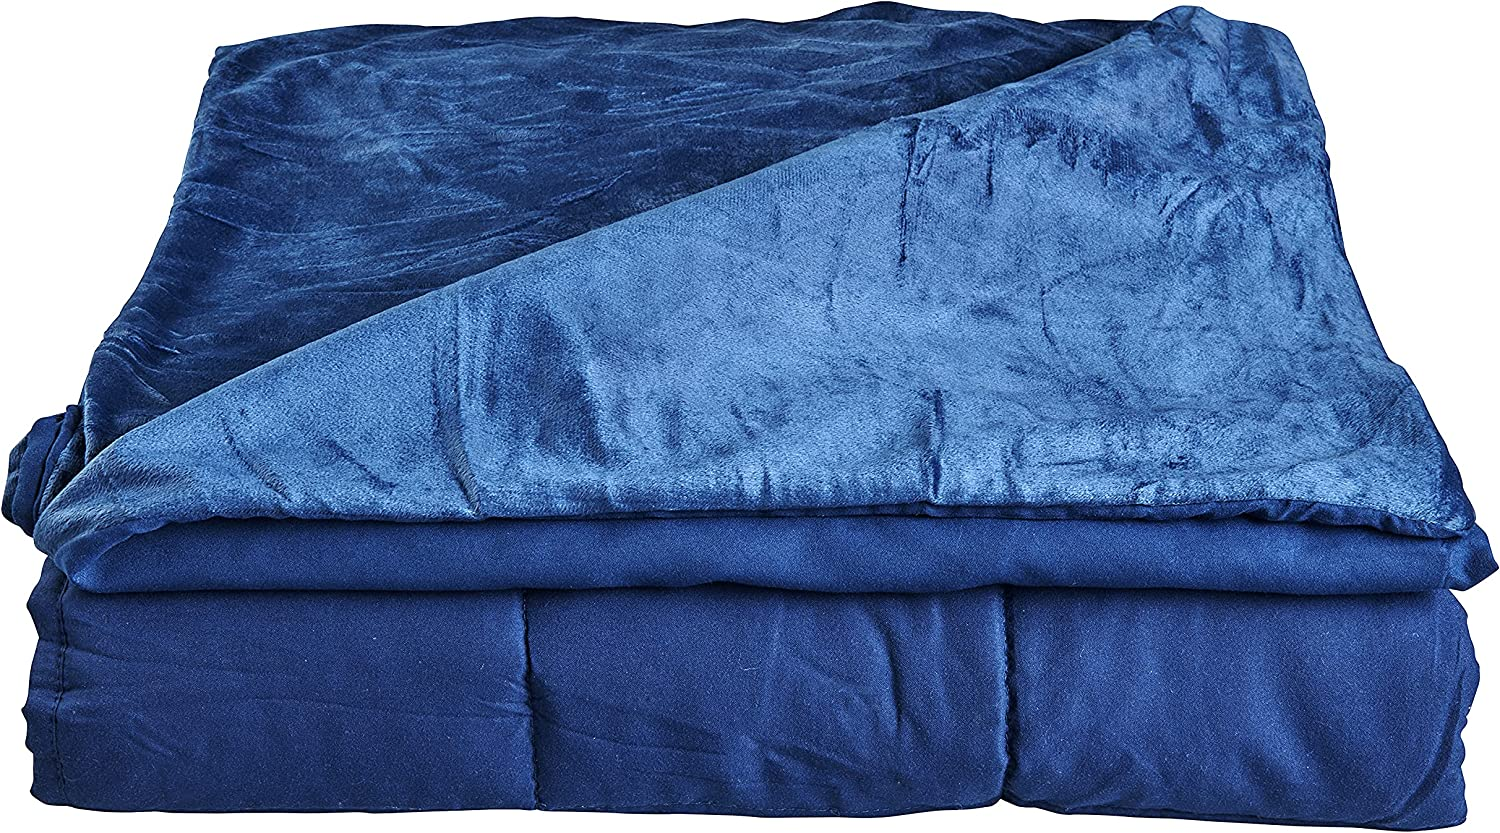 Cozy Comfort Kids Weighted latest Fashion Blanket with 6lb Removable Cover